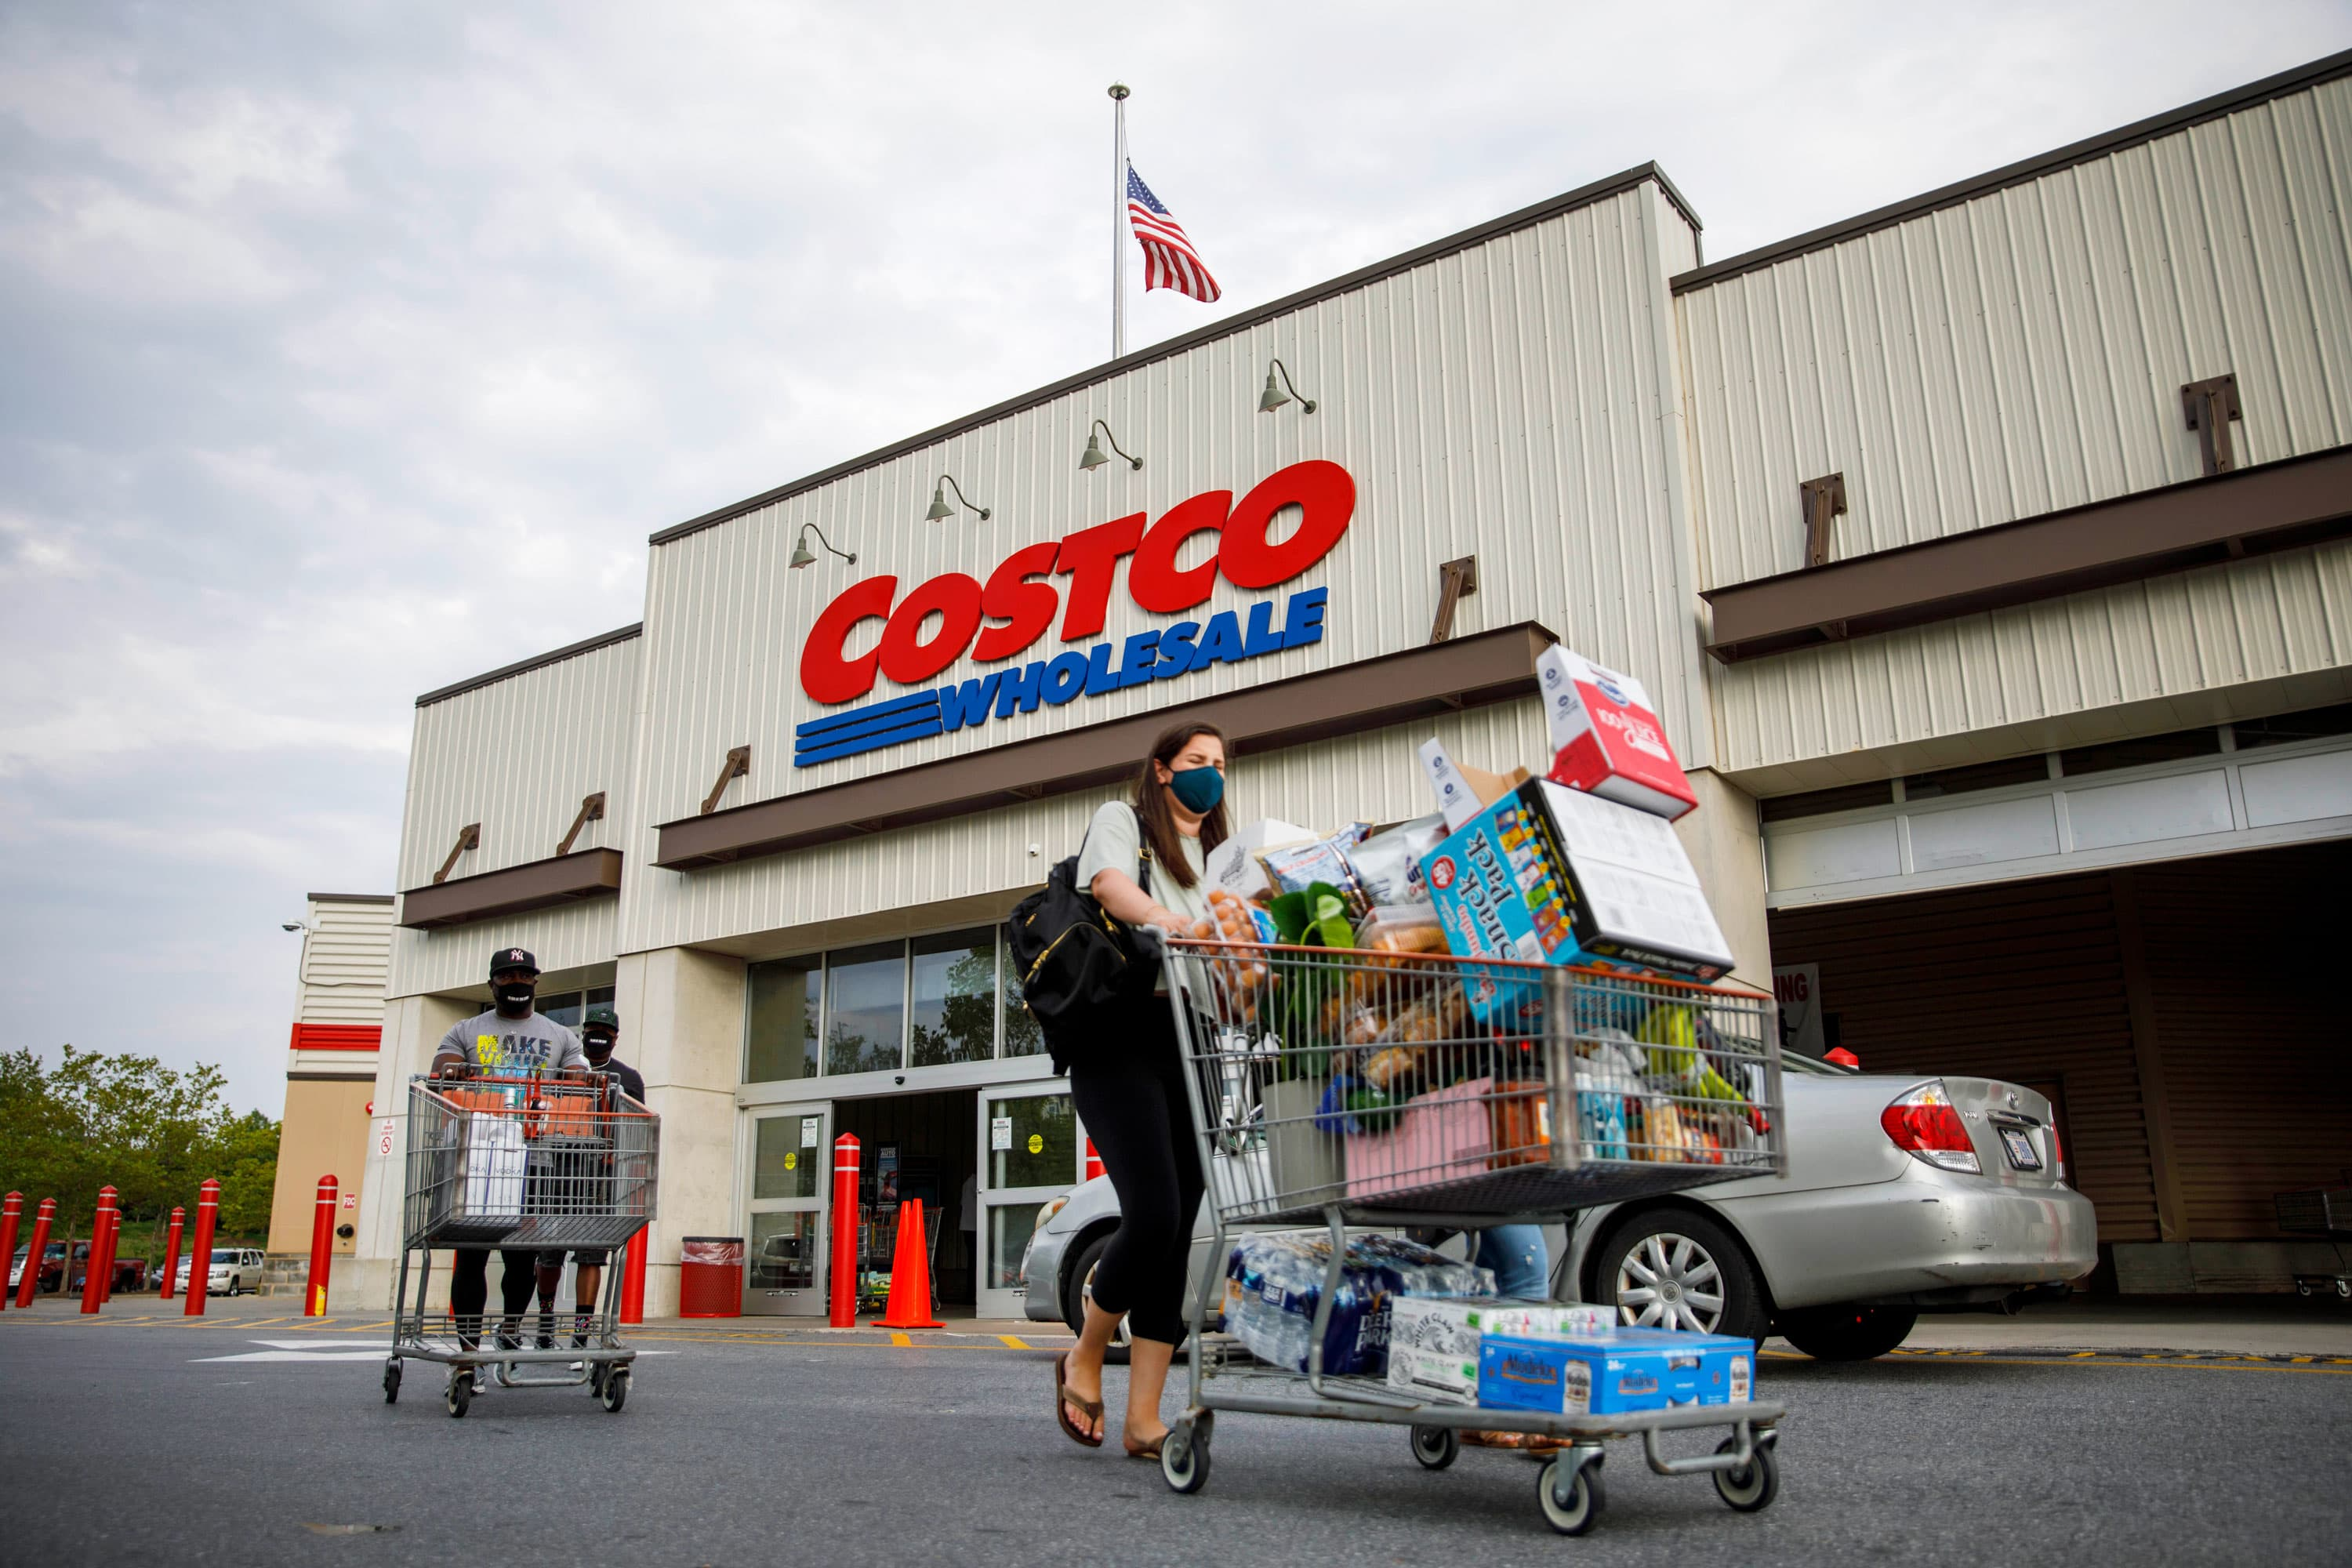 Costco CEO says brick-and-mortar remains key even as e-commerce grows